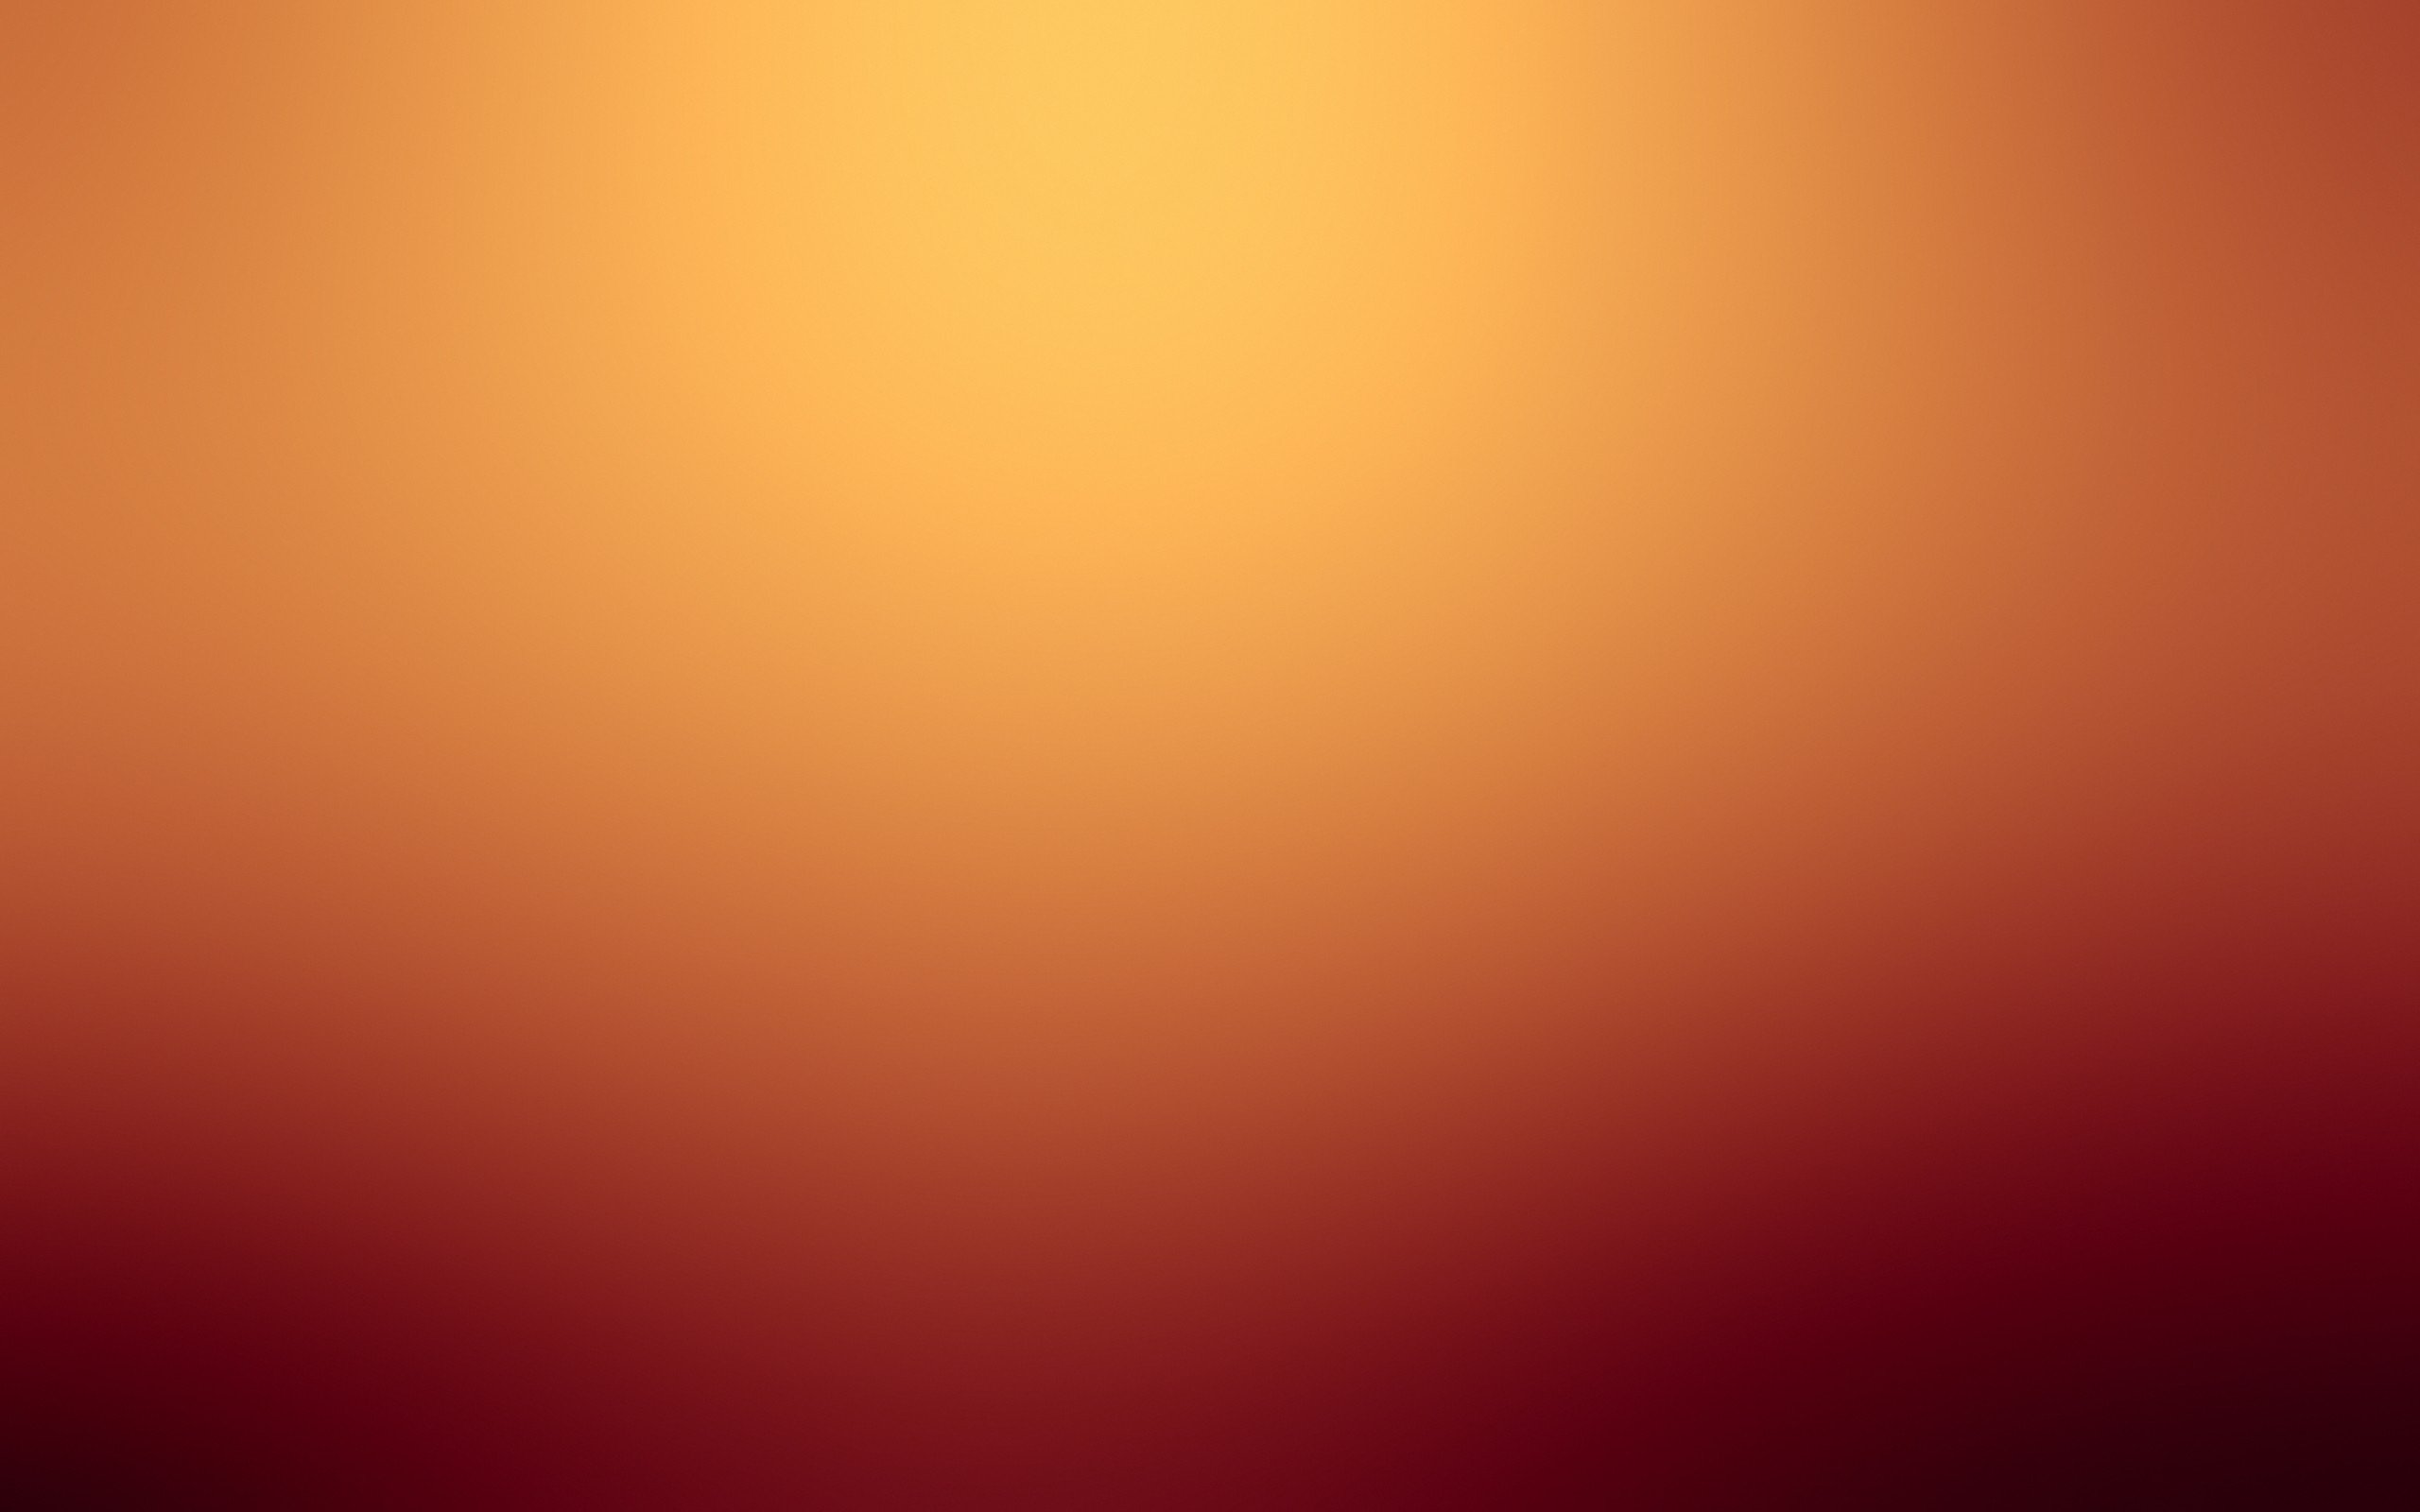 Desktop Background Orange wallpapers HD   396505 2560x1600